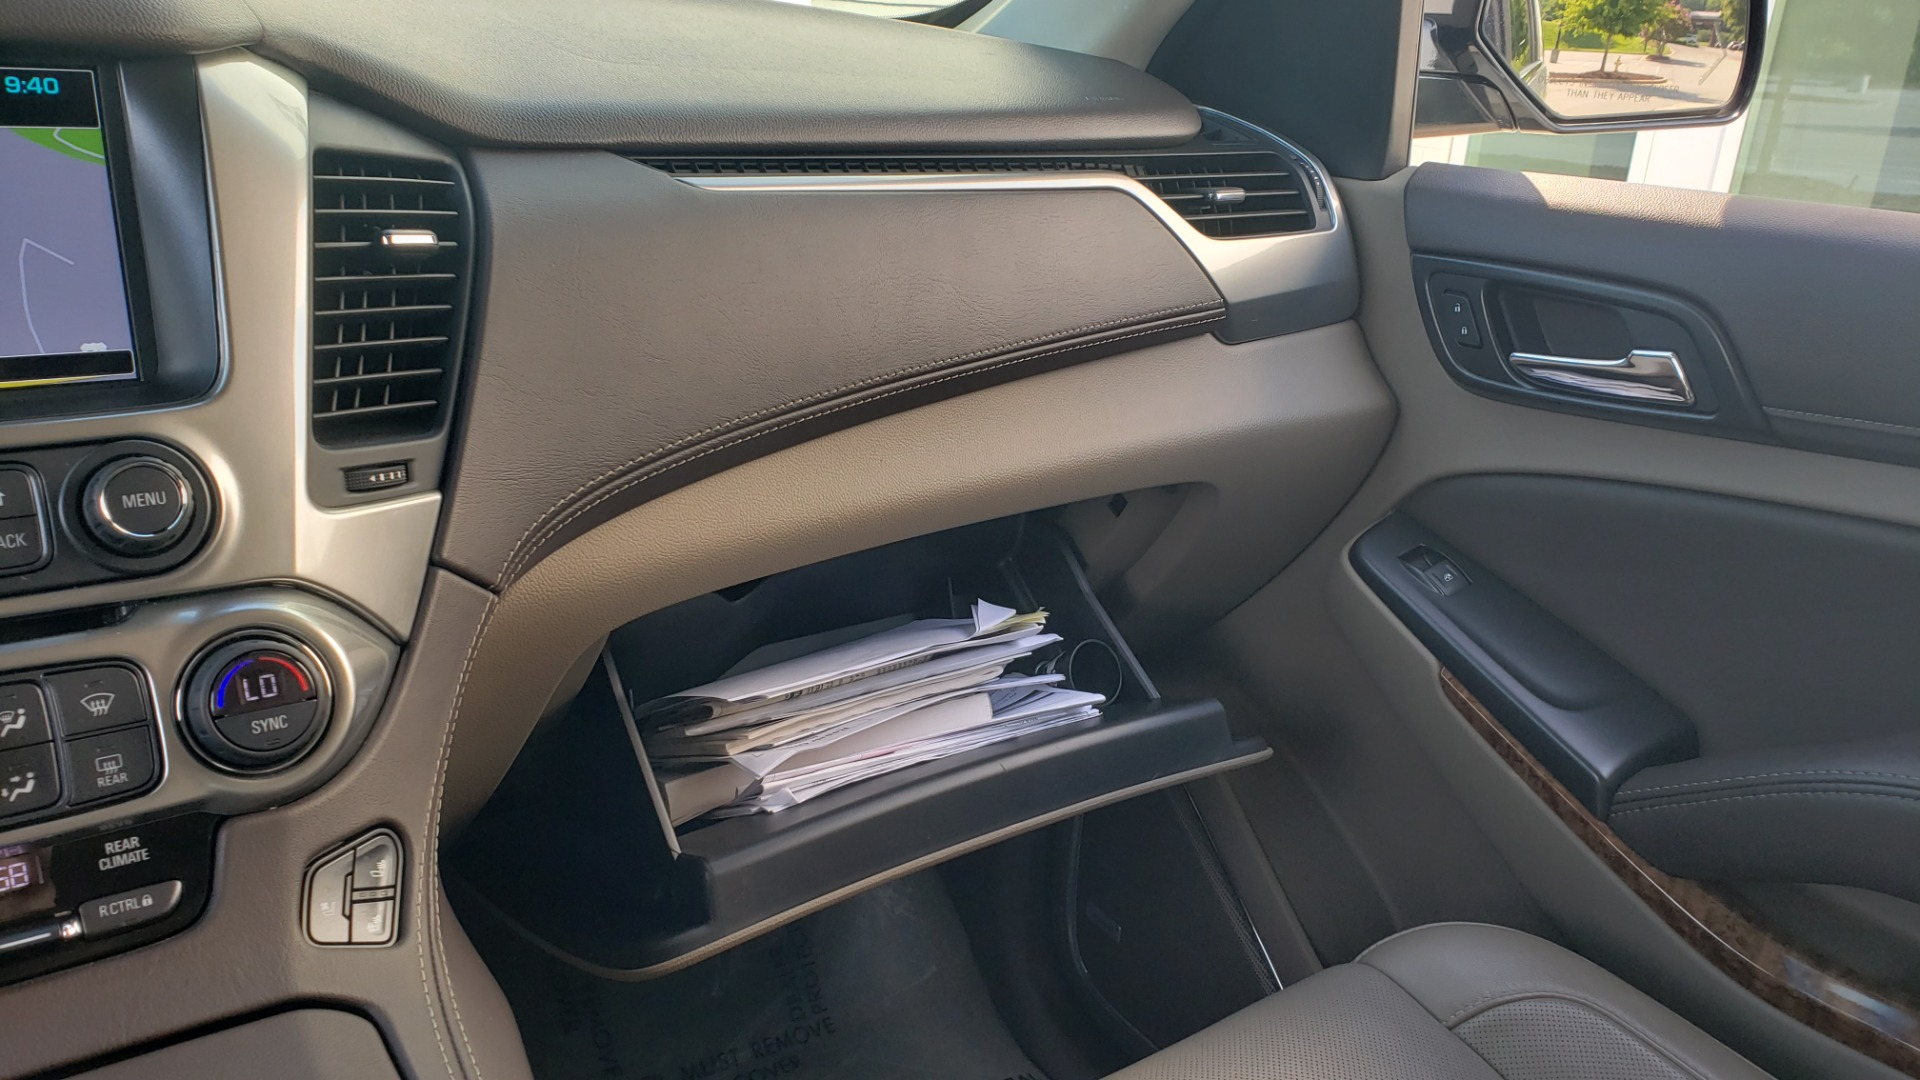 Used 2018 Chevrolet TAHOE PREMIER 4X4 / NAV / BOSE / SUNROOF / ENT SYS / 3-ROW / REARVIEW for sale $55,995 at Formula Imports in Charlotte NC 28227 57